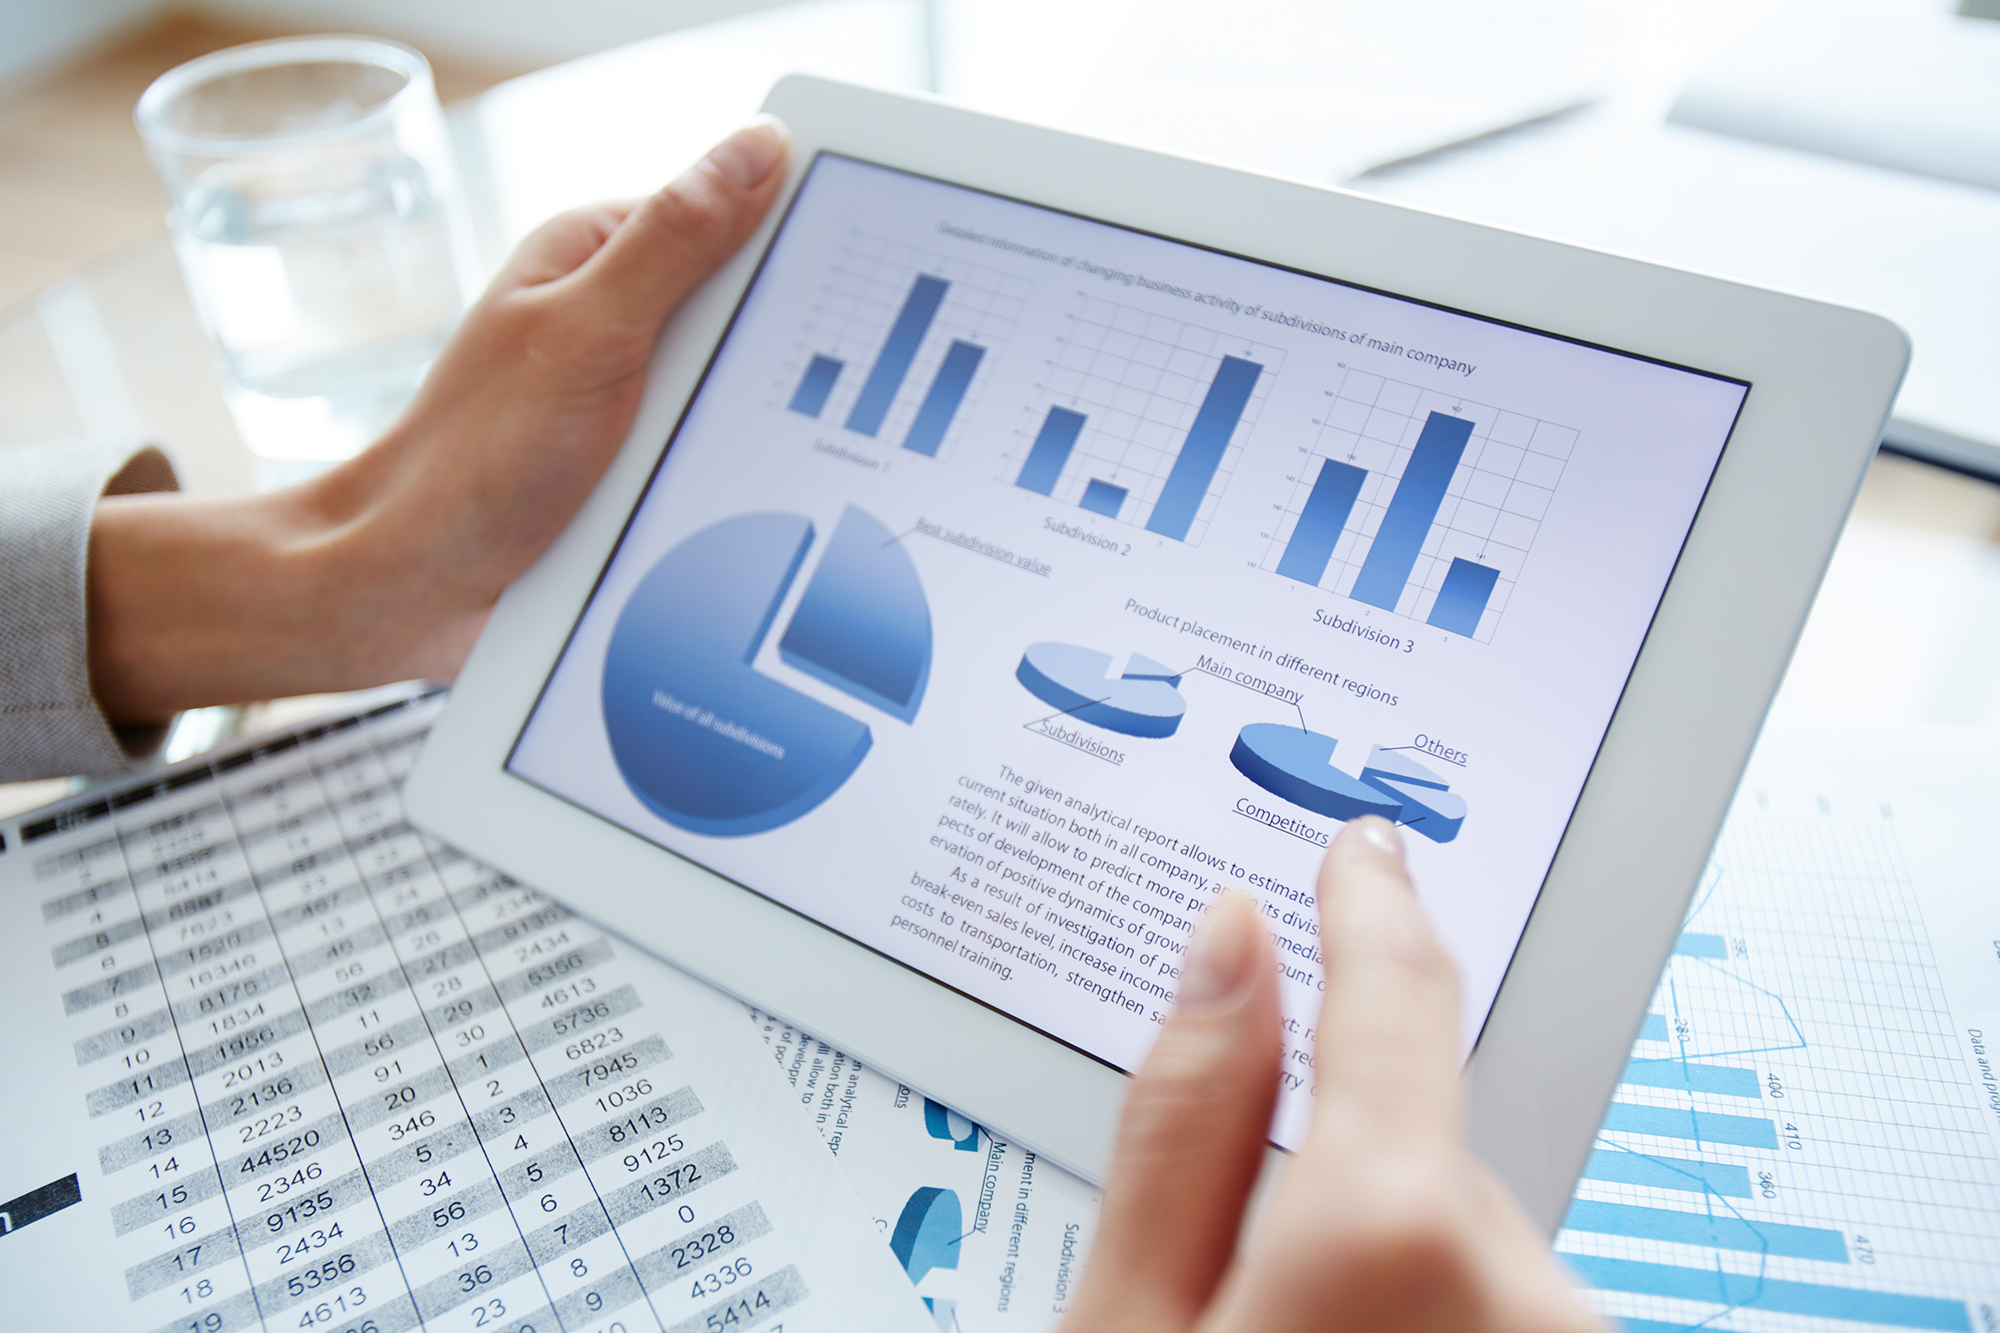 Descriptive image: hands holding a tablet with graphs and charts displayed